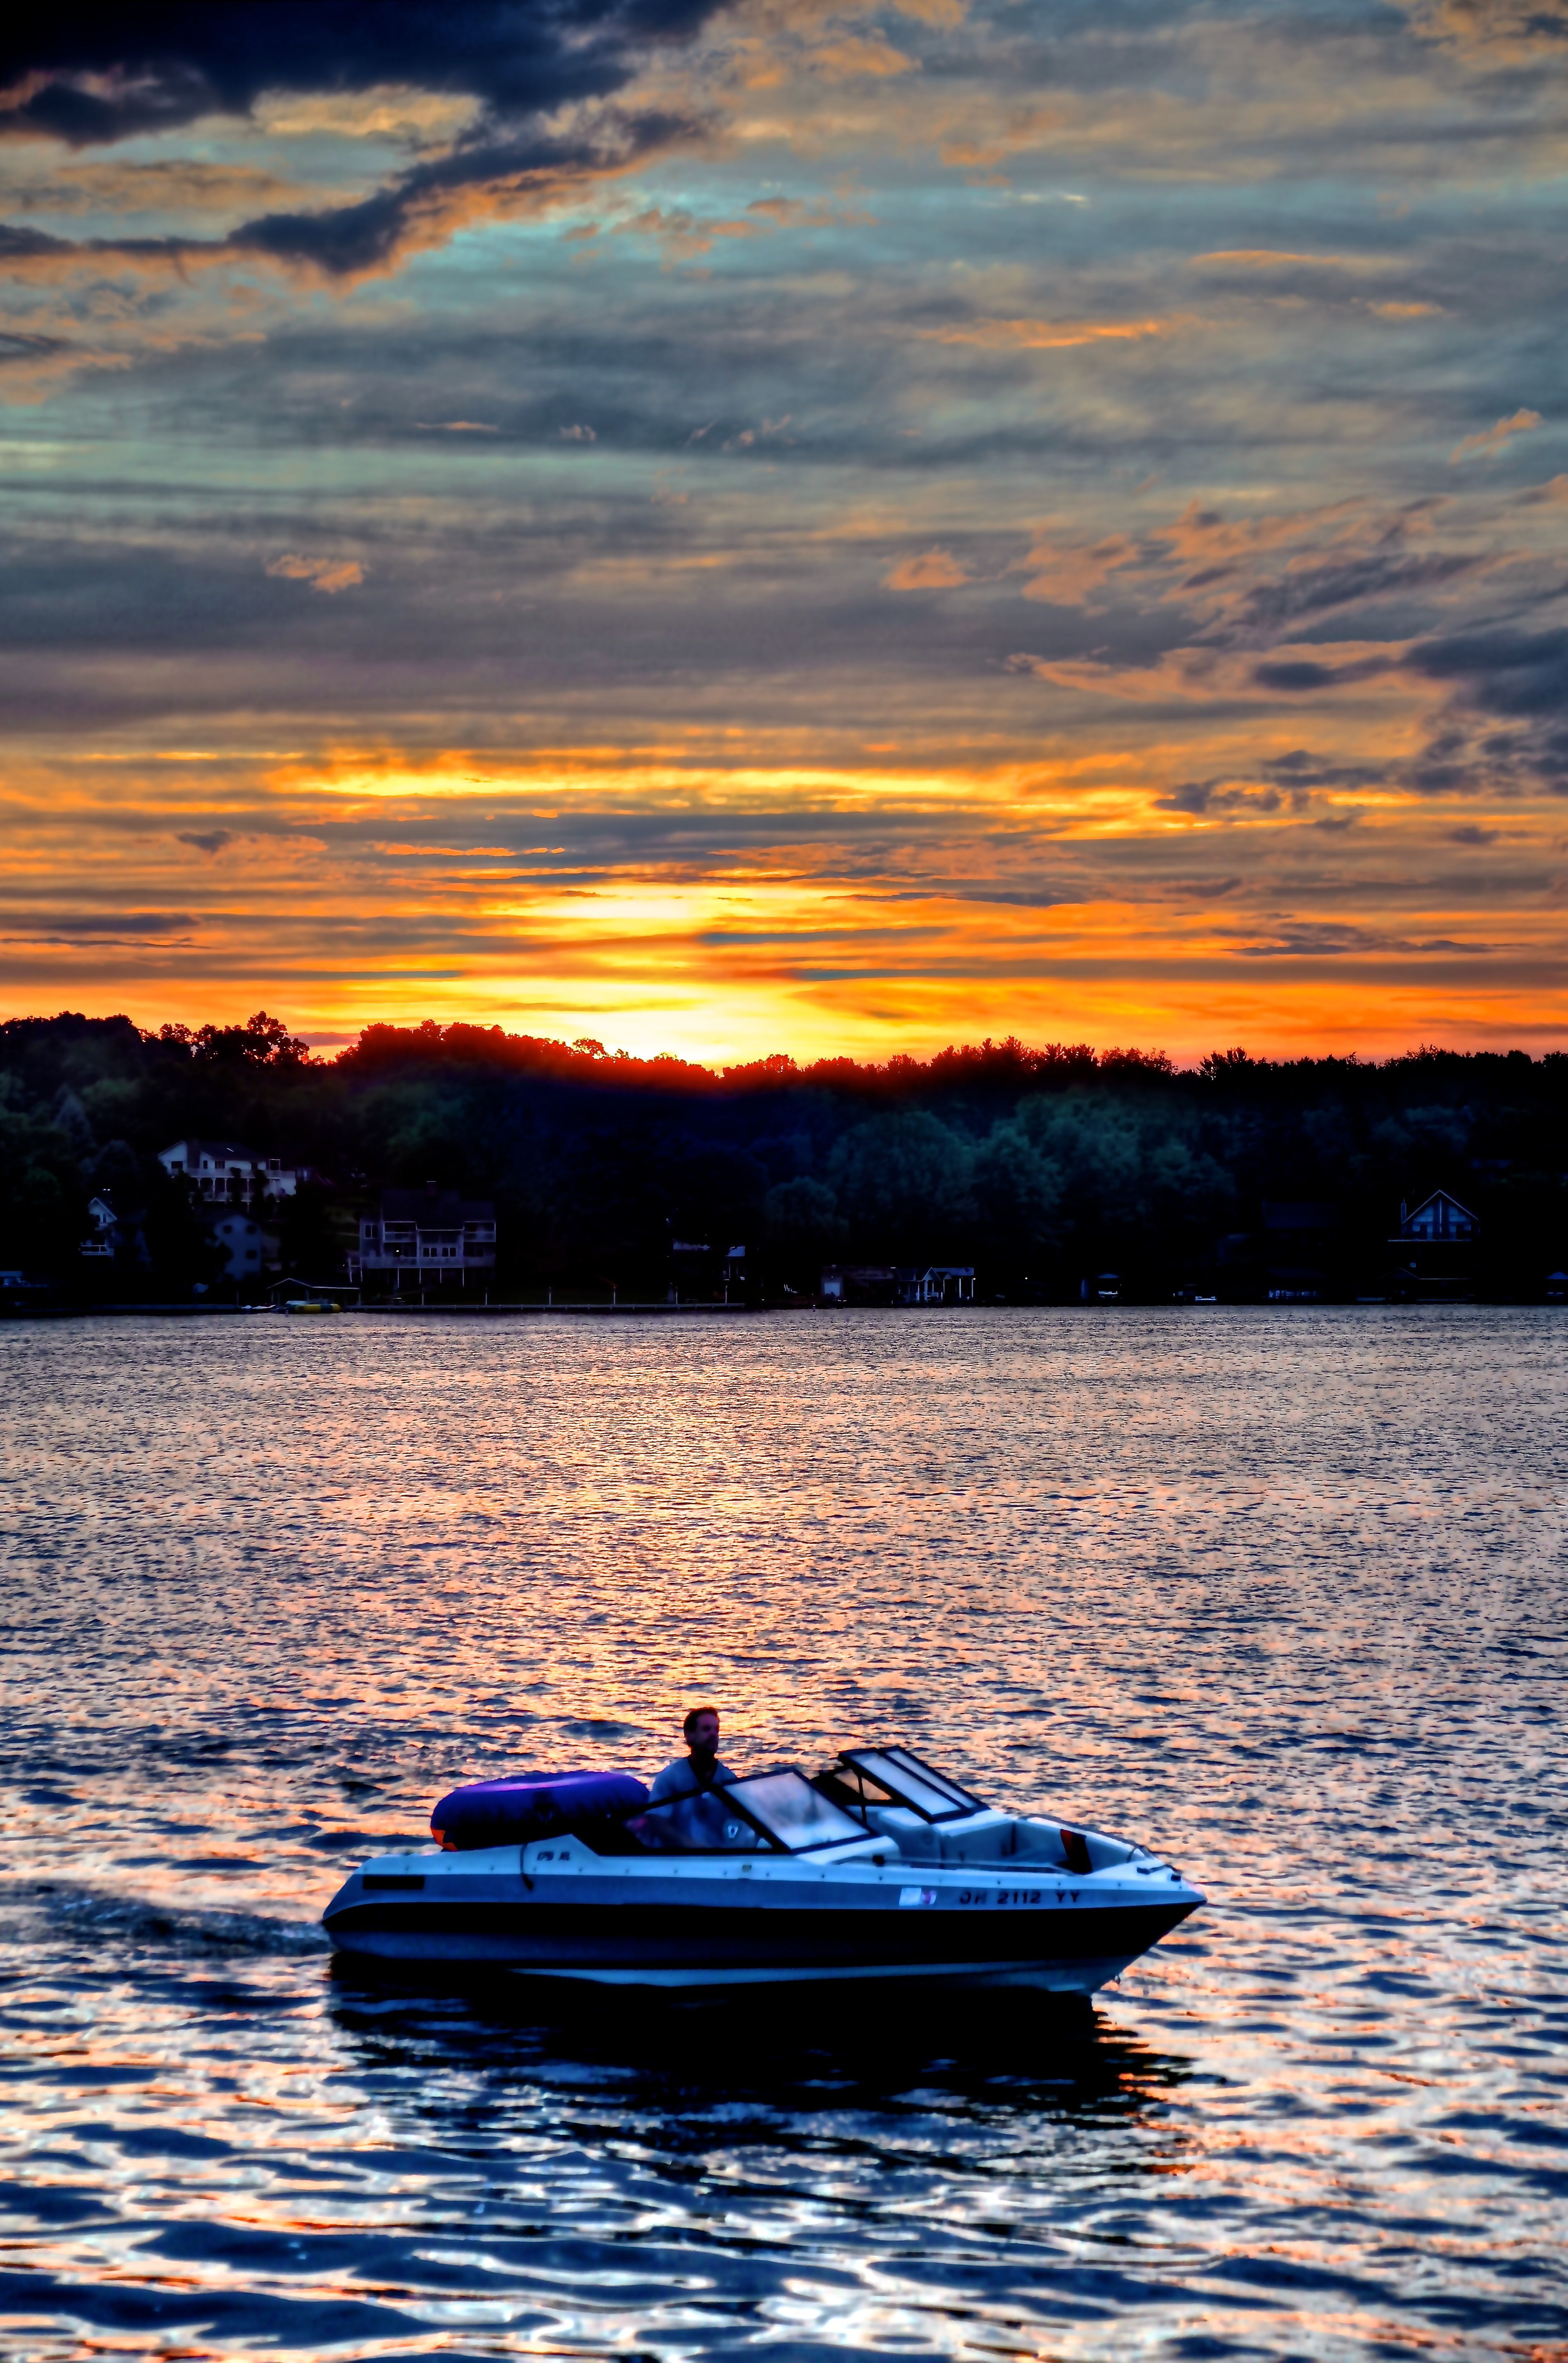 The perfect way to spend an evening on the lake